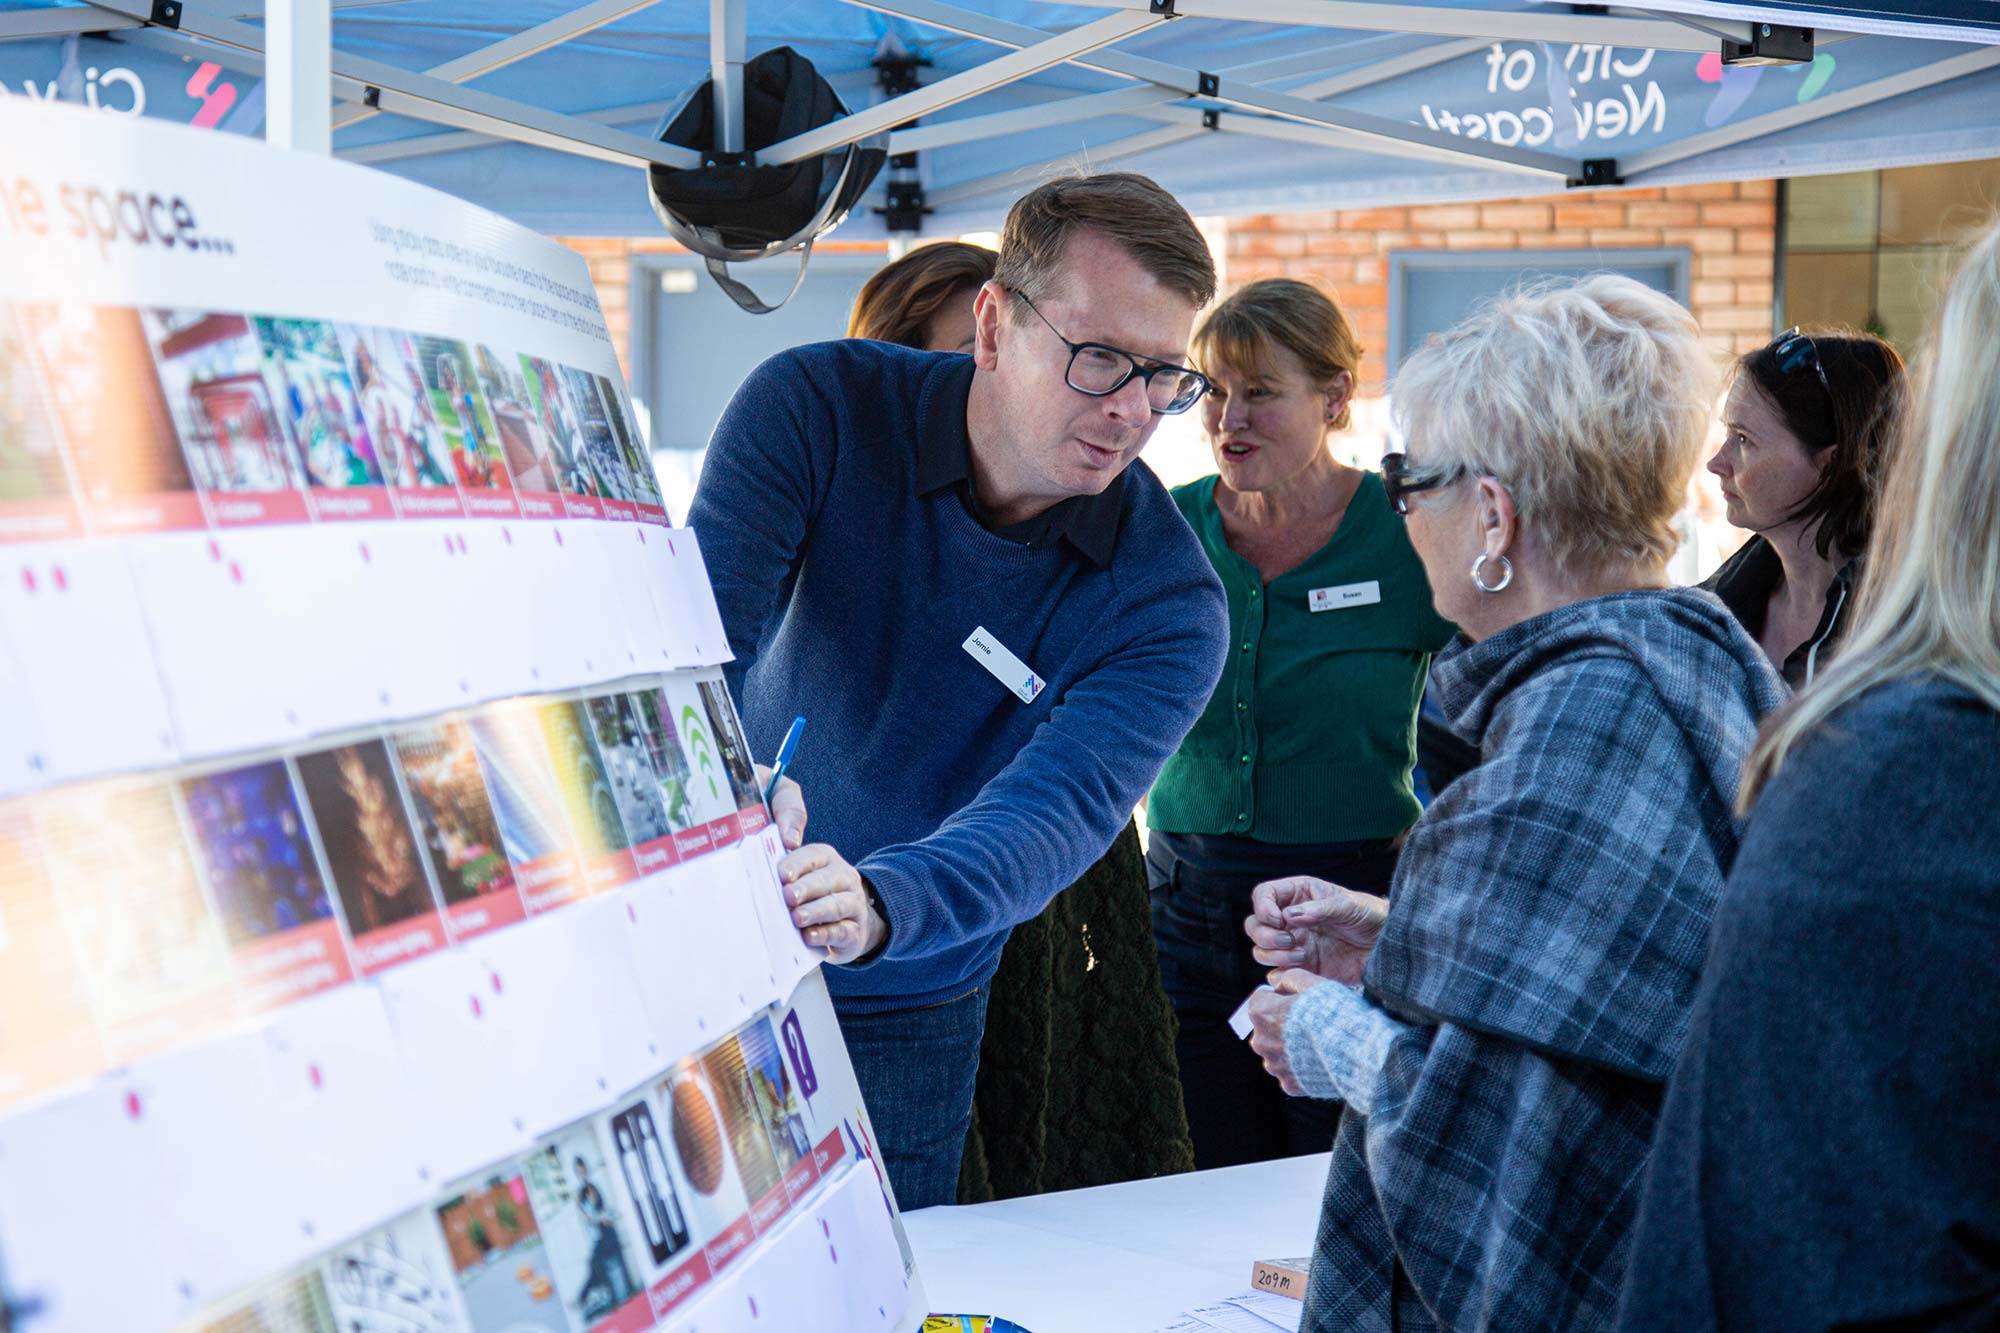 Photography for the City of Newcastle, a man explains to a lady in Hamilton about city plans.